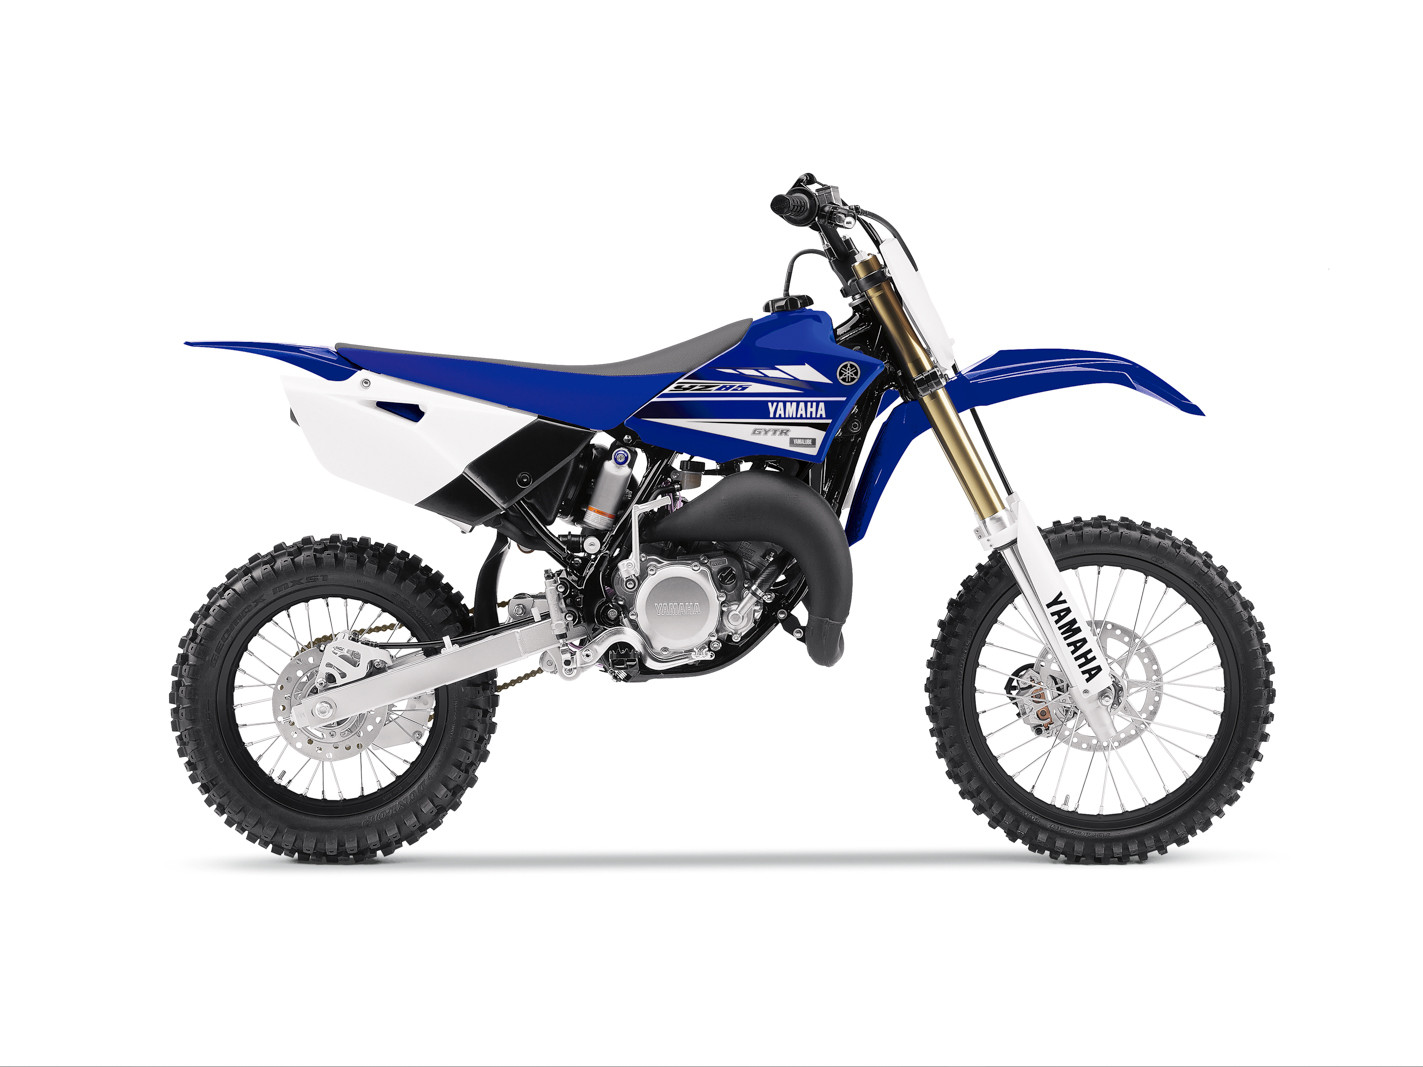 2017 yamaha yz85 first look 2017 yamaha motocross and off road line motocross pictures. Black Bedroom Furniture Sets. Home Design Ideas